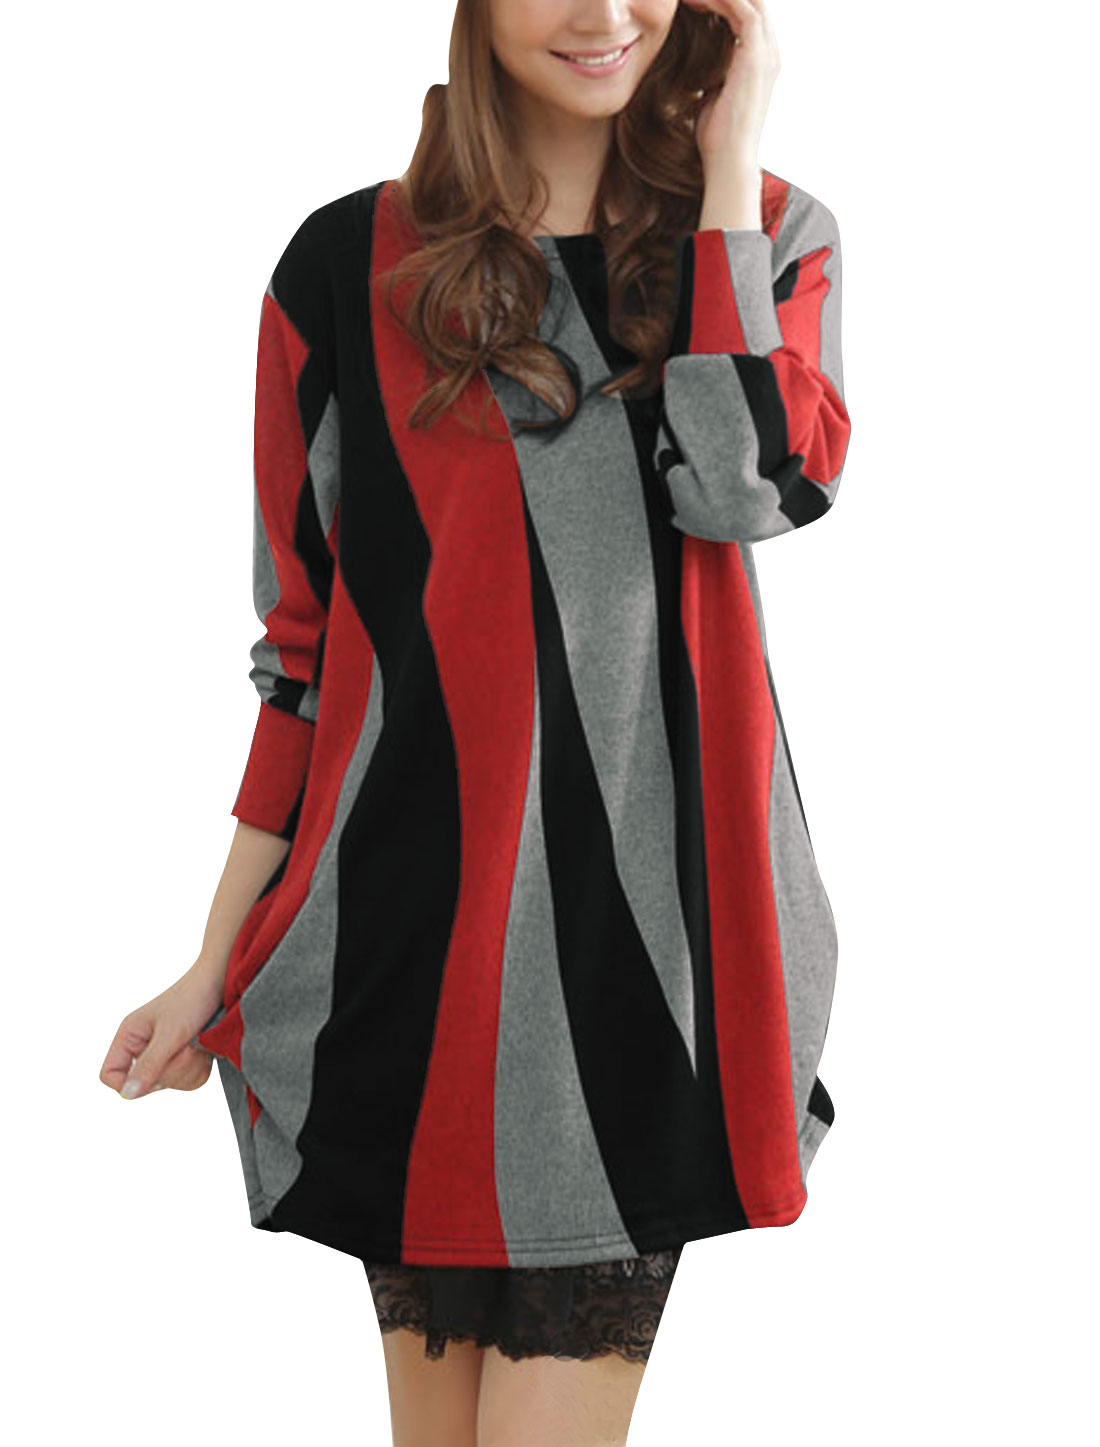 Ladies Red Black Colorblock Striped Spring Tunic Knitted Shirt S